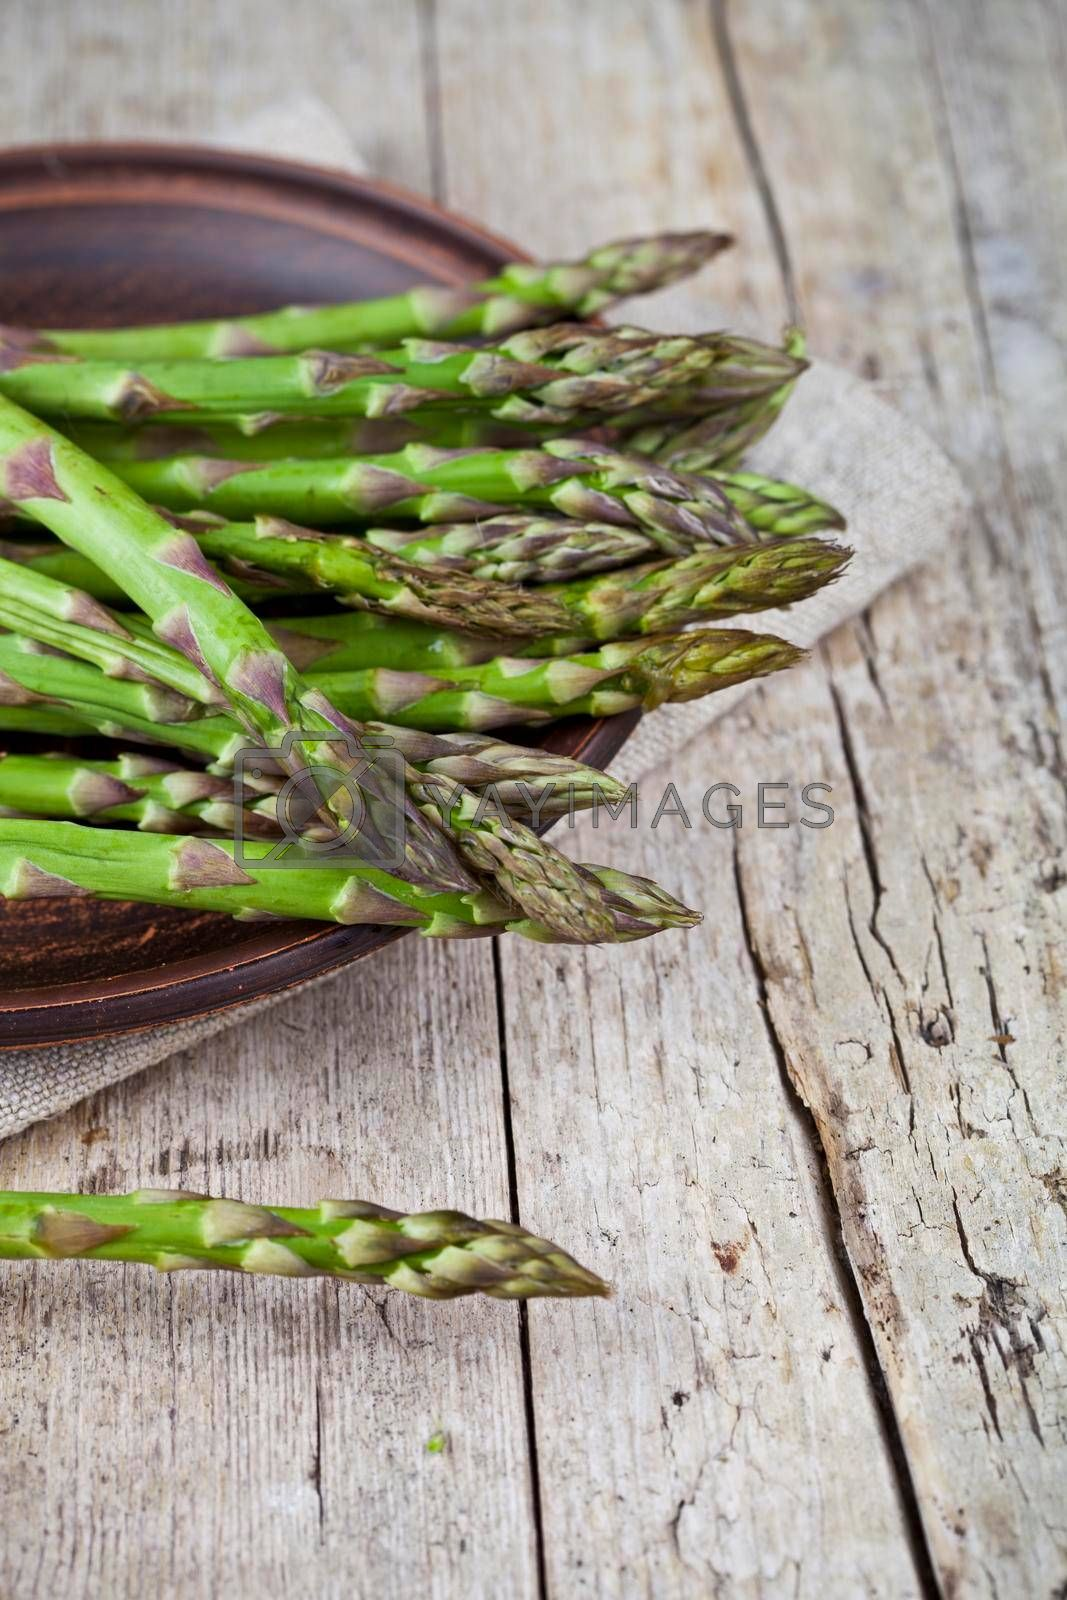 Fresh raw garden asparagus closeup on brown ceramic plate and linen napkin on rustic wooden table background. Green spring vegetables. Edible sprouts of asparagus. With copy space.